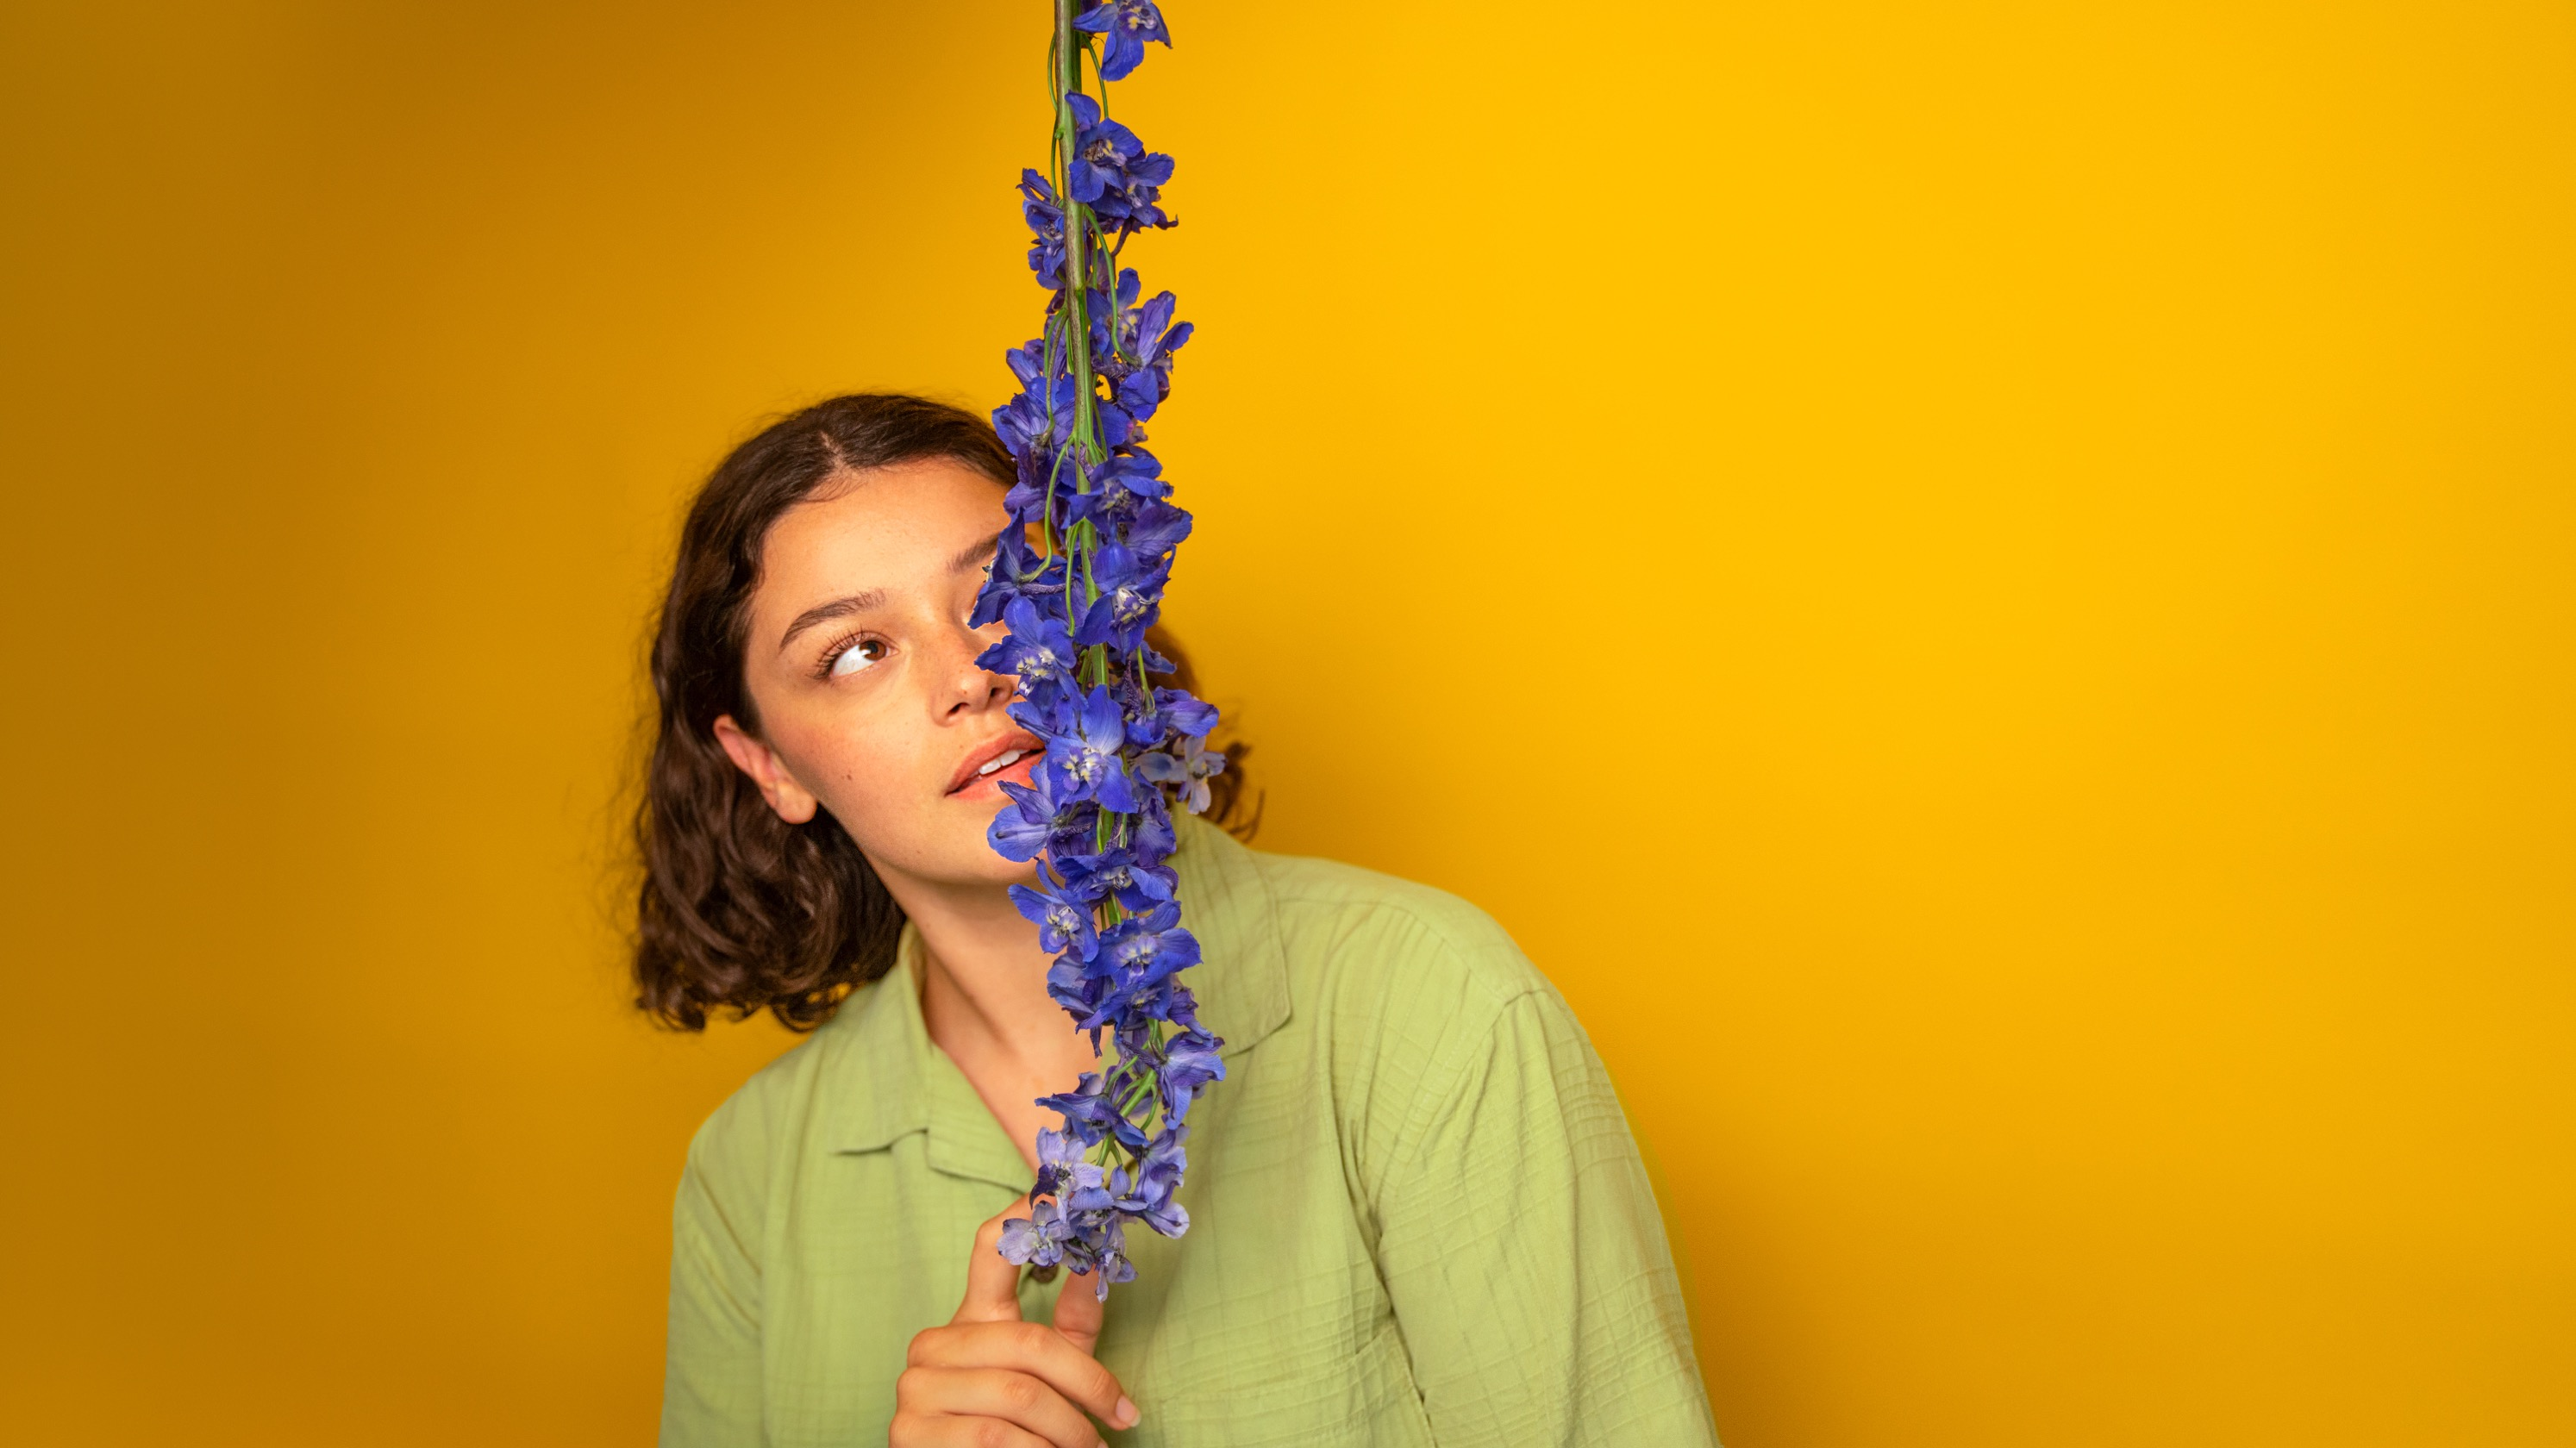 Woman standing in front of a yellow background looking at a vine covered in purple flowers.